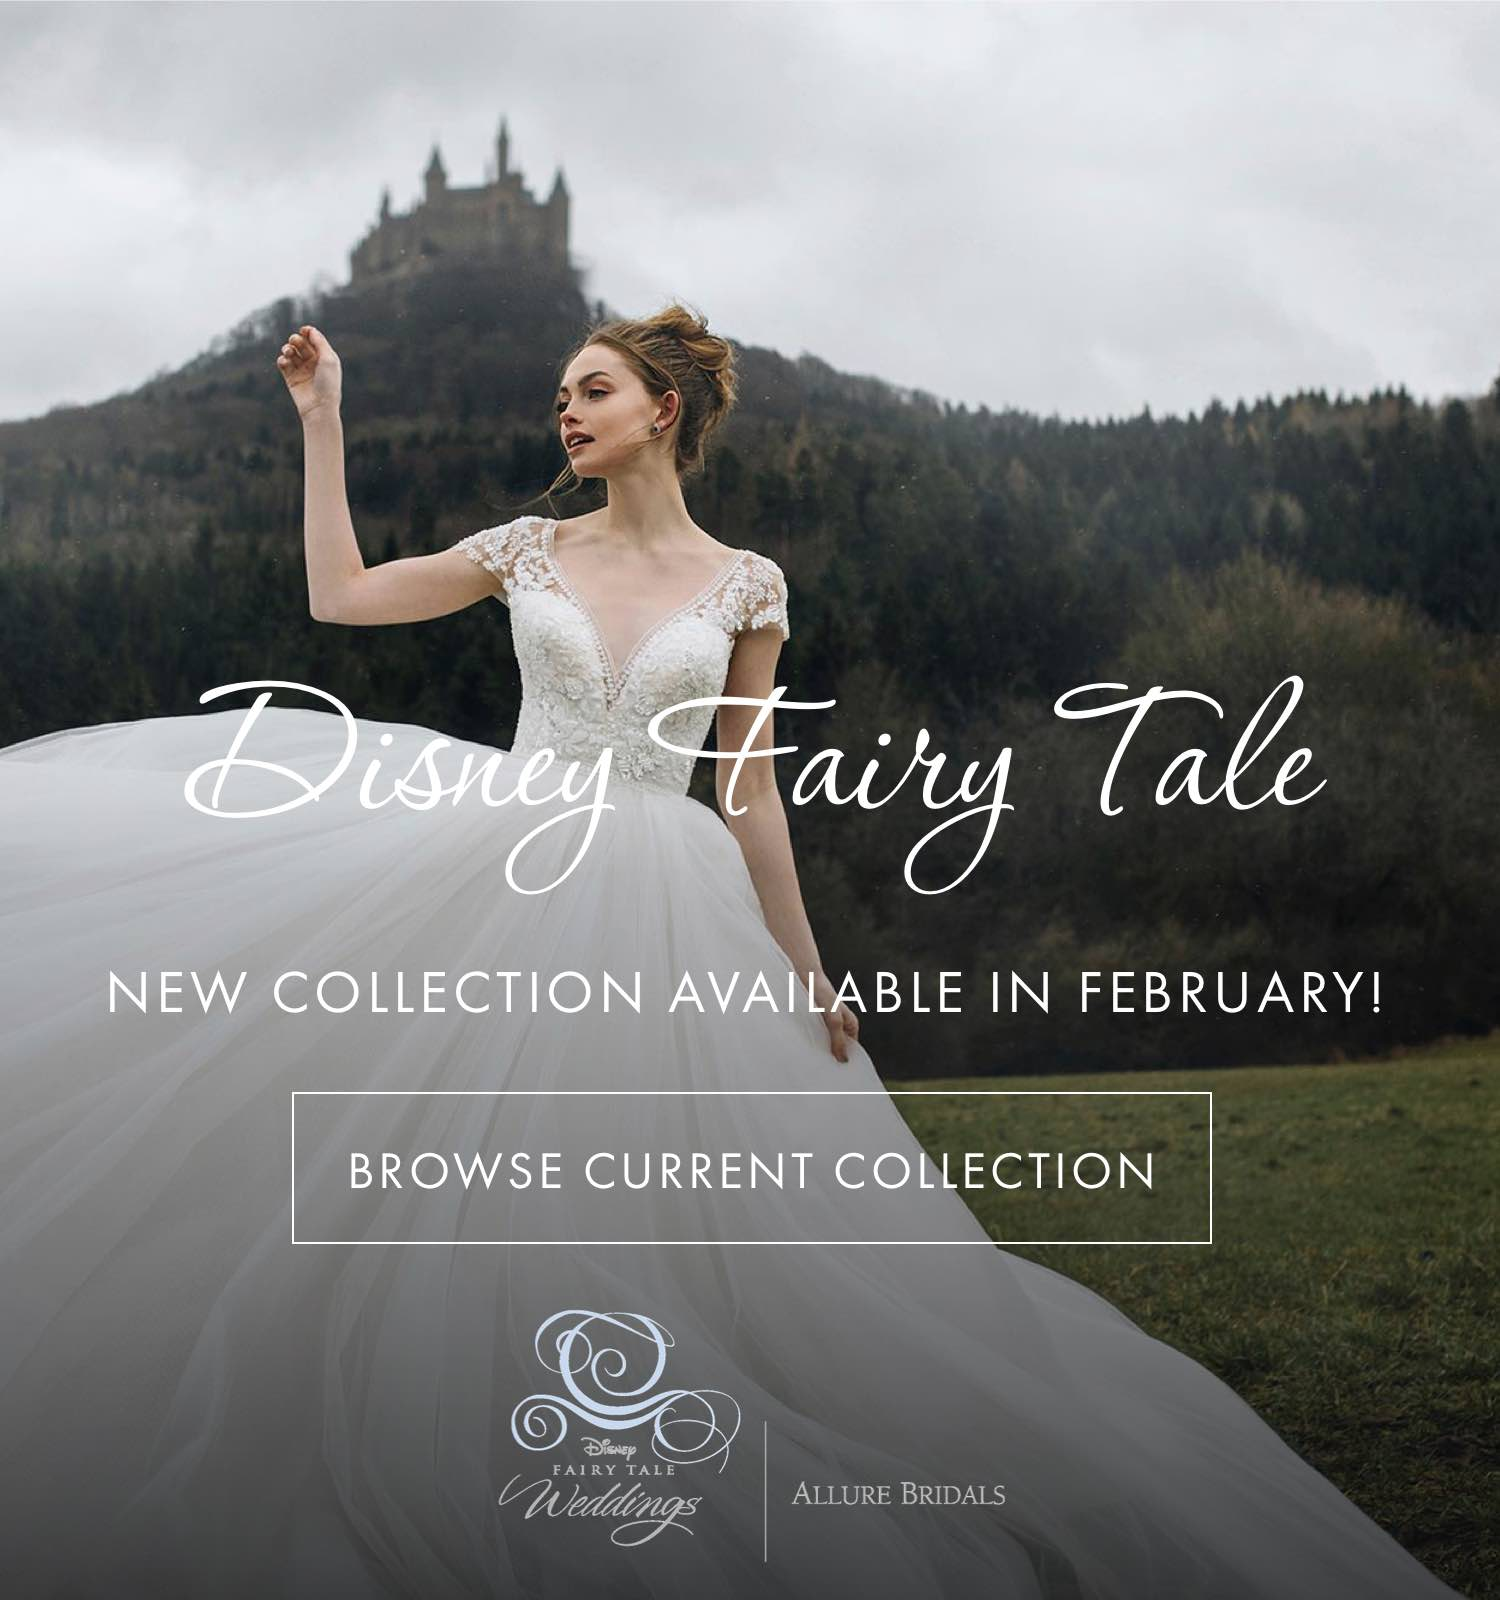 Woman in a white ball gown from the Disney Fairy Tale Weddings collection